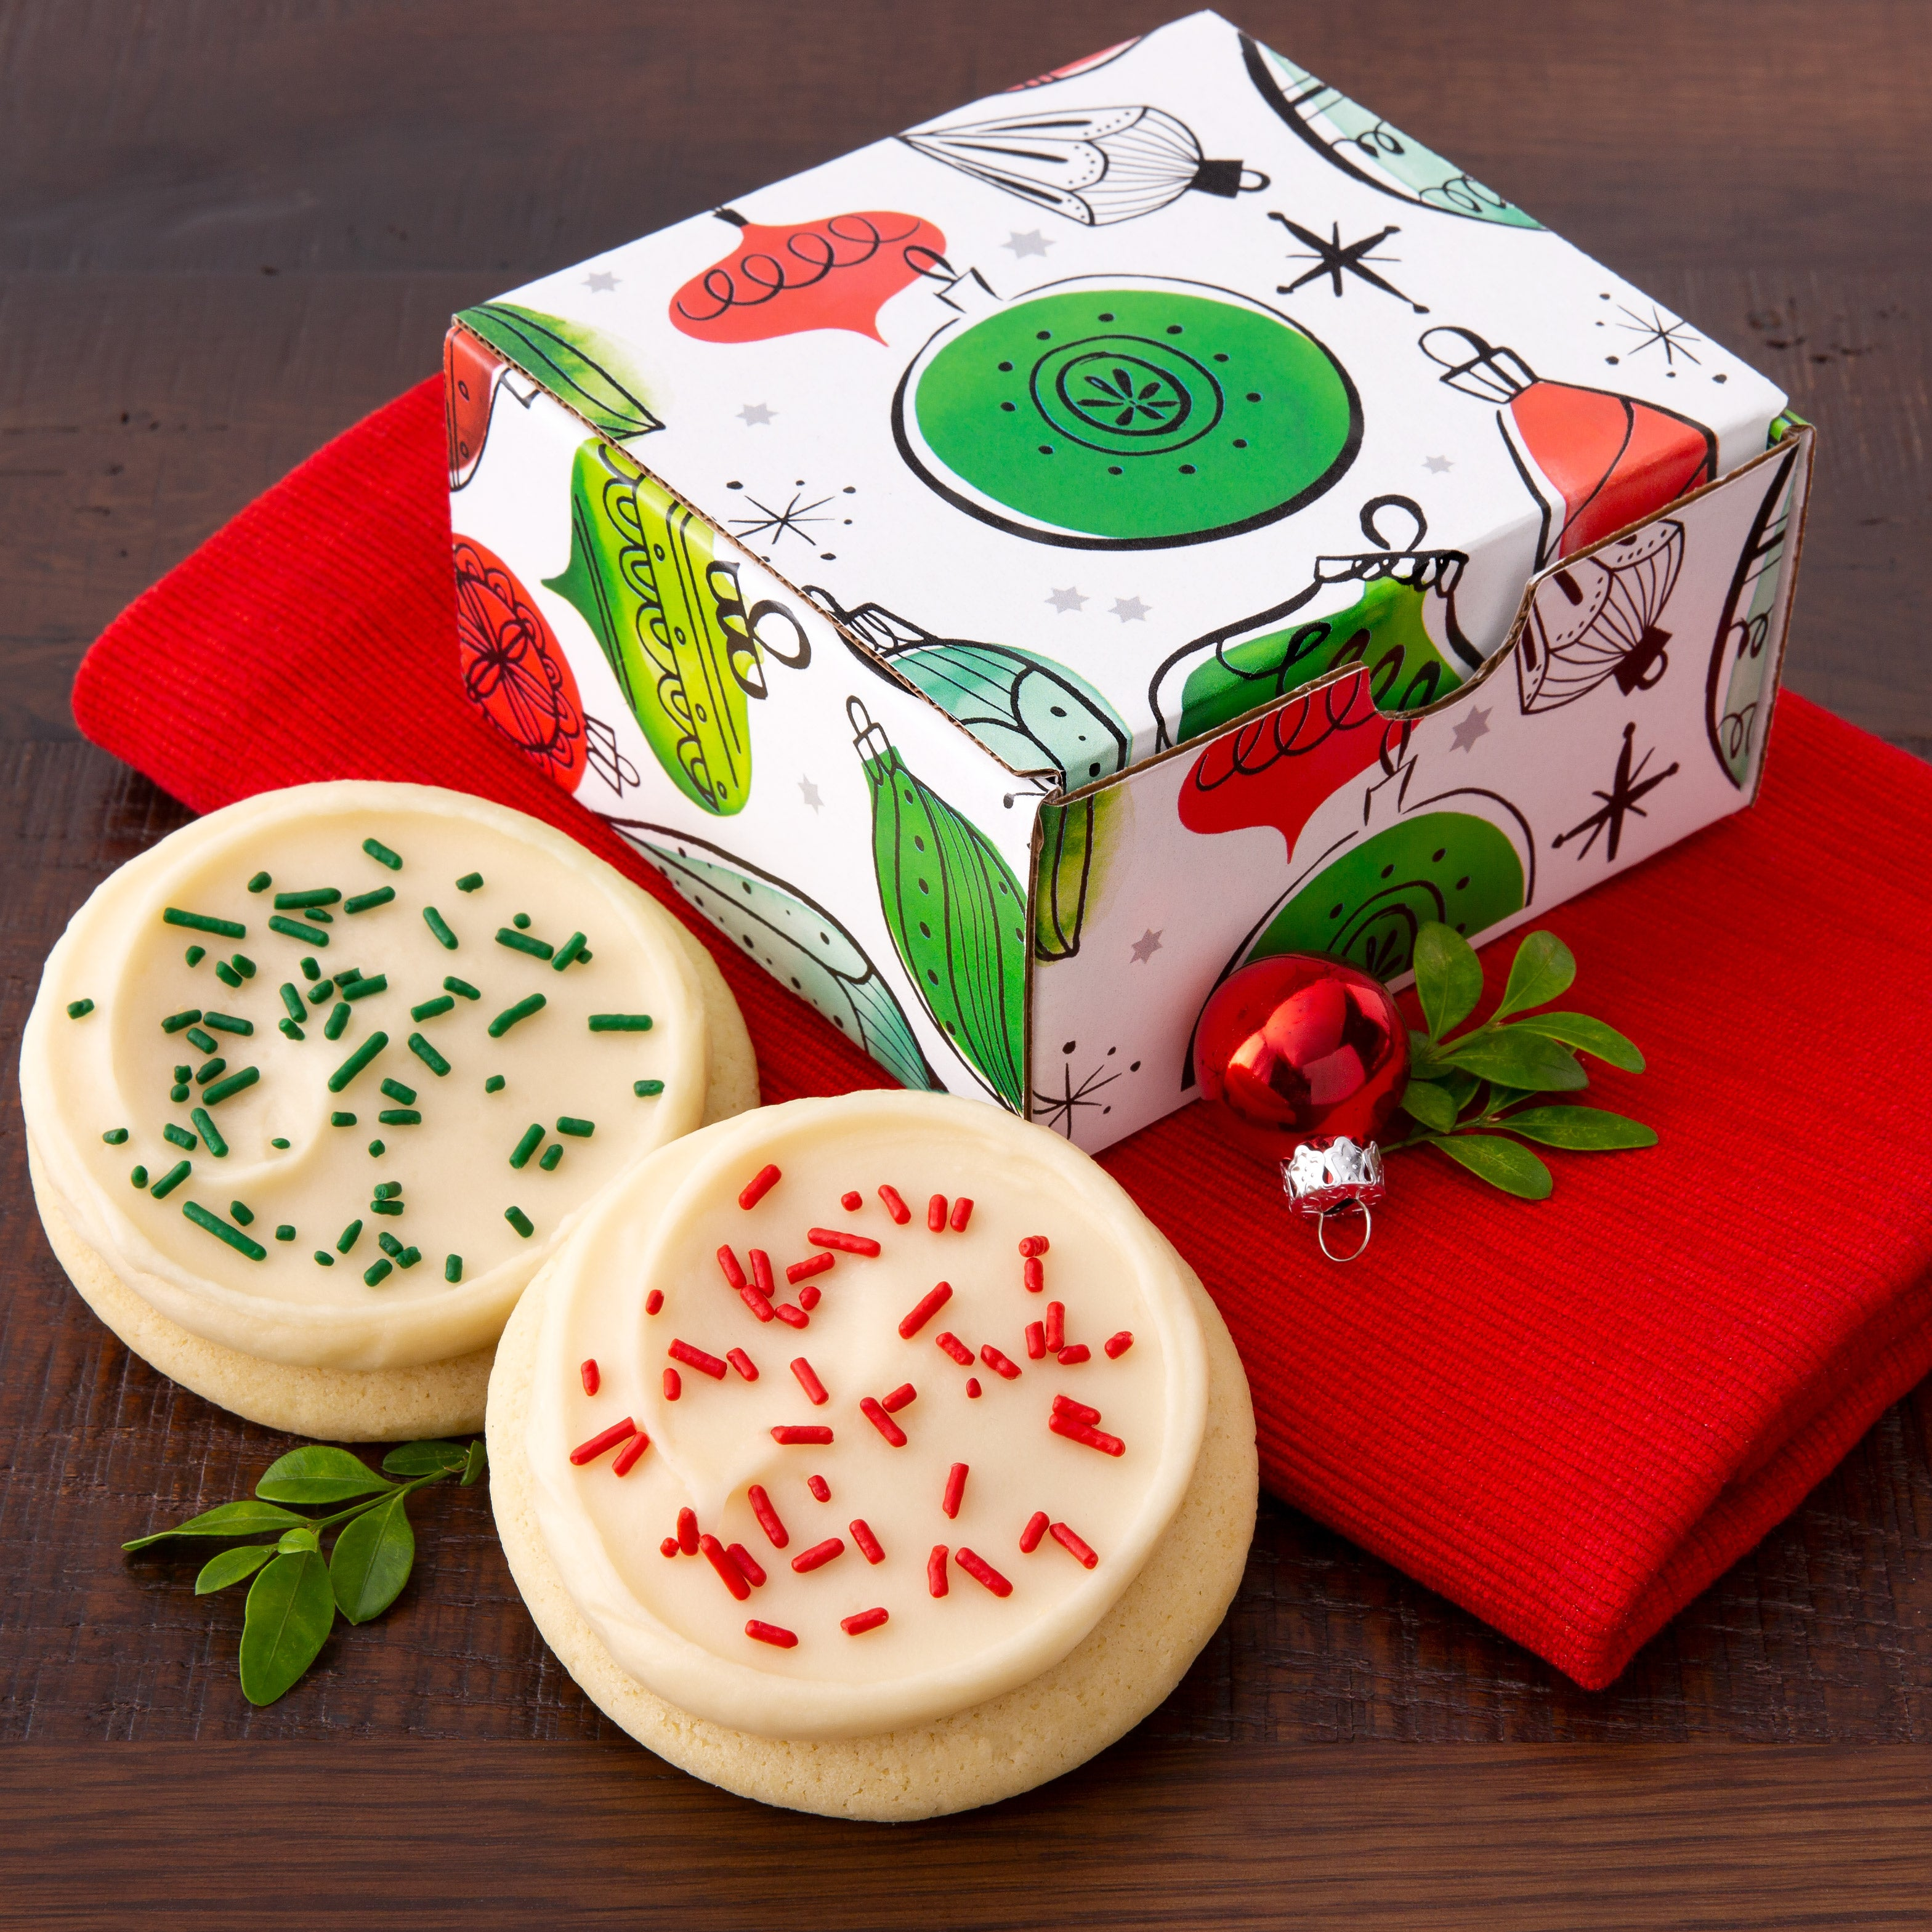 Cookies Are Best When Shared in a Festive Ornament Box - $3.00